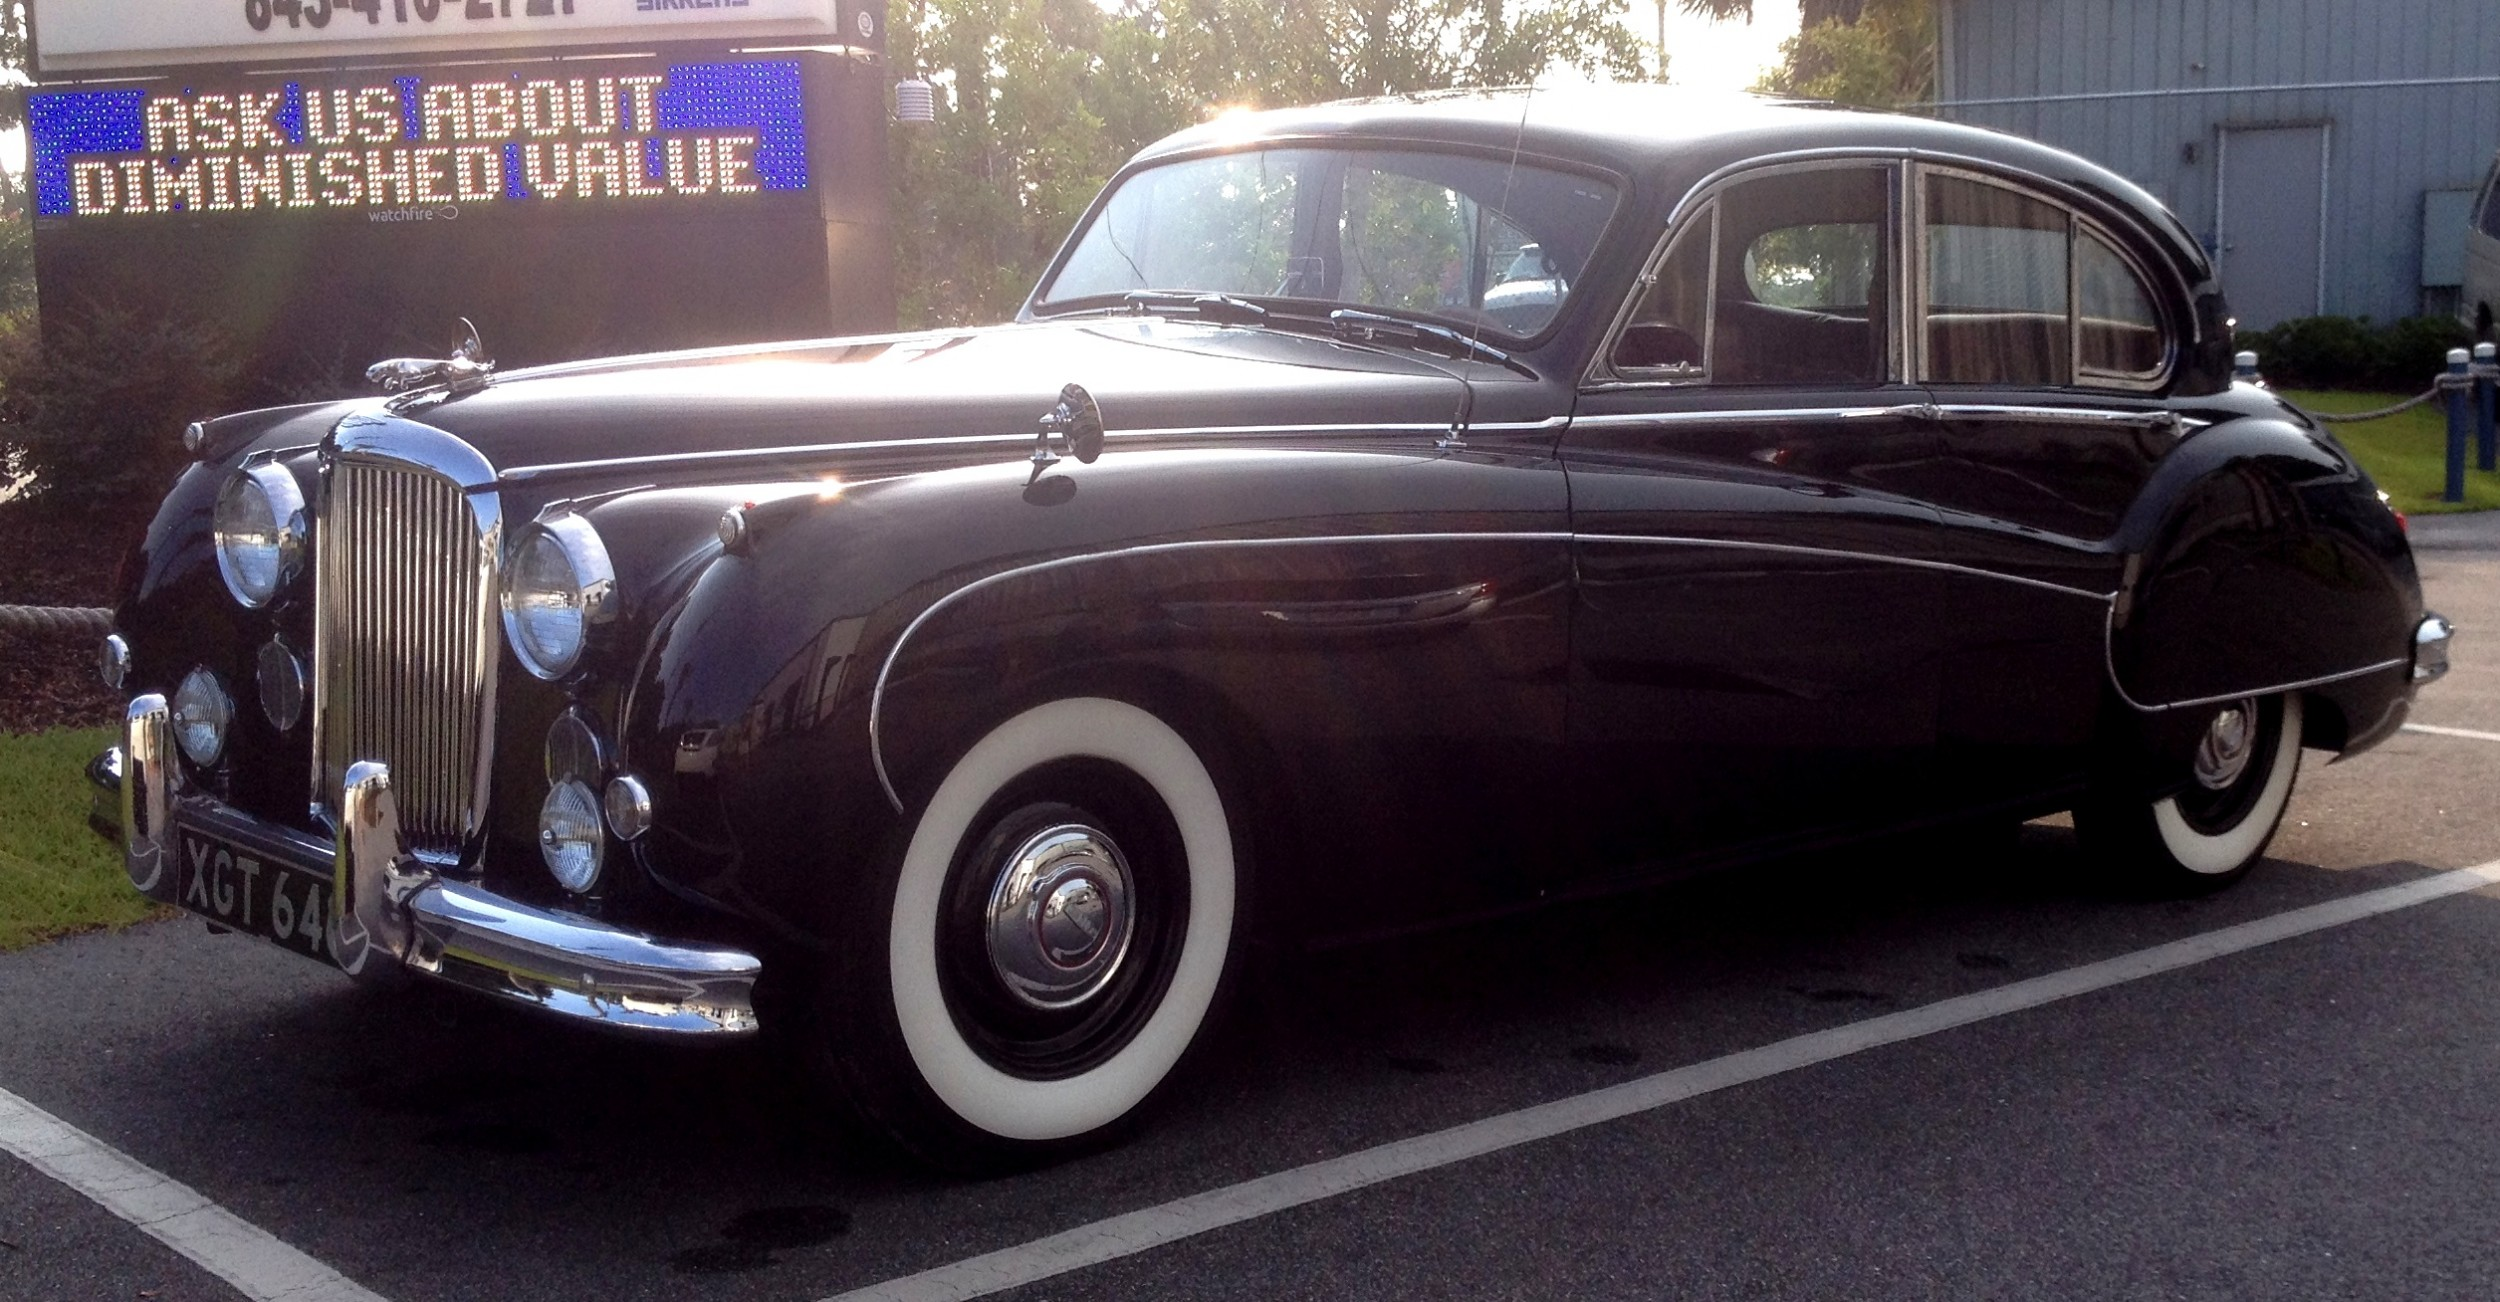 Iconic Classic 1959 Jaguar Mark Ix Is Blue Blood Royalty With Most 1950s Cars